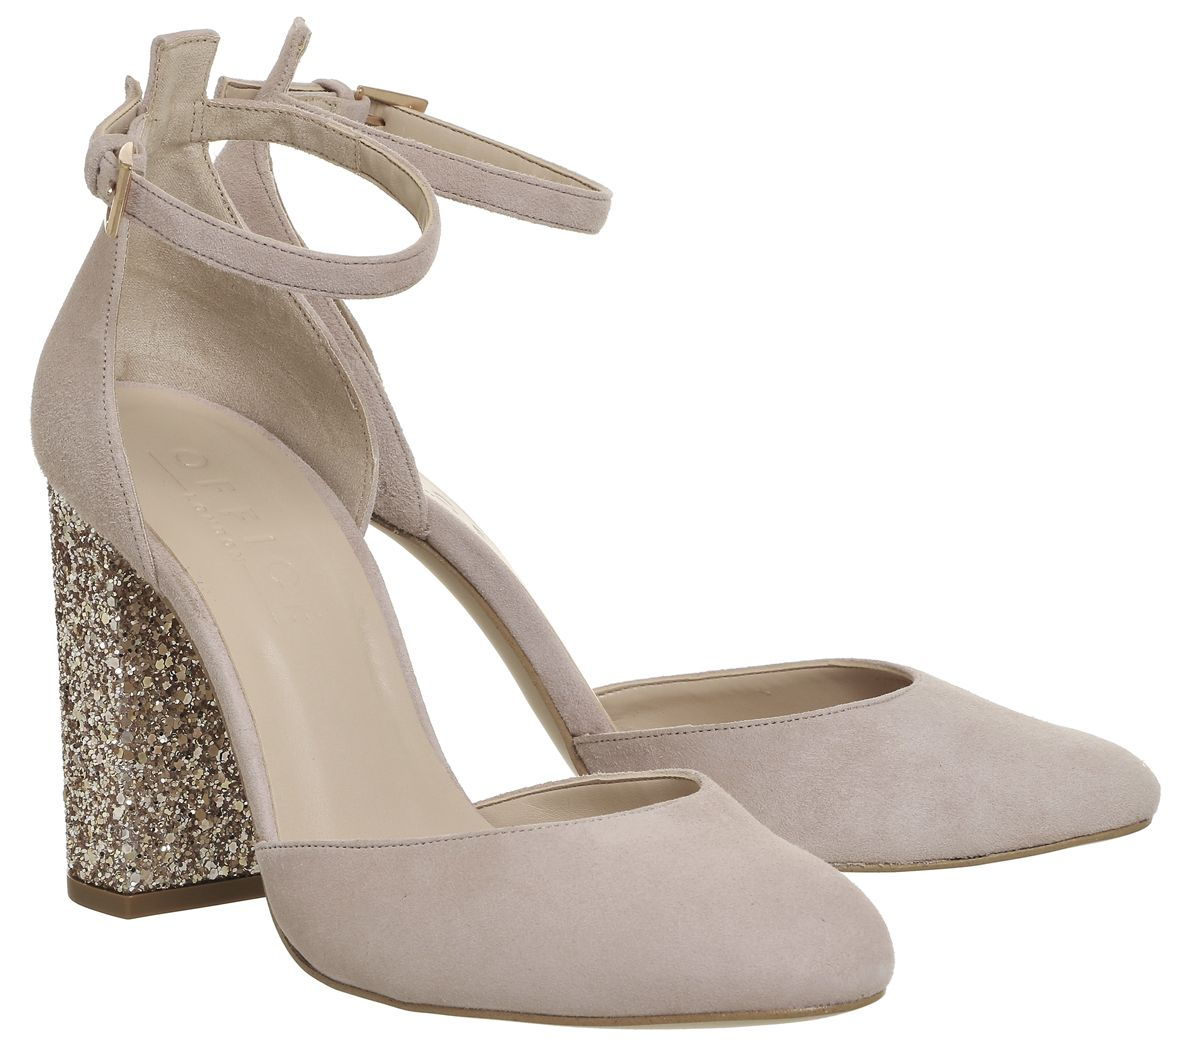 Office Hyacinth Mary Jane Heels Nude Suede Gold Glitter